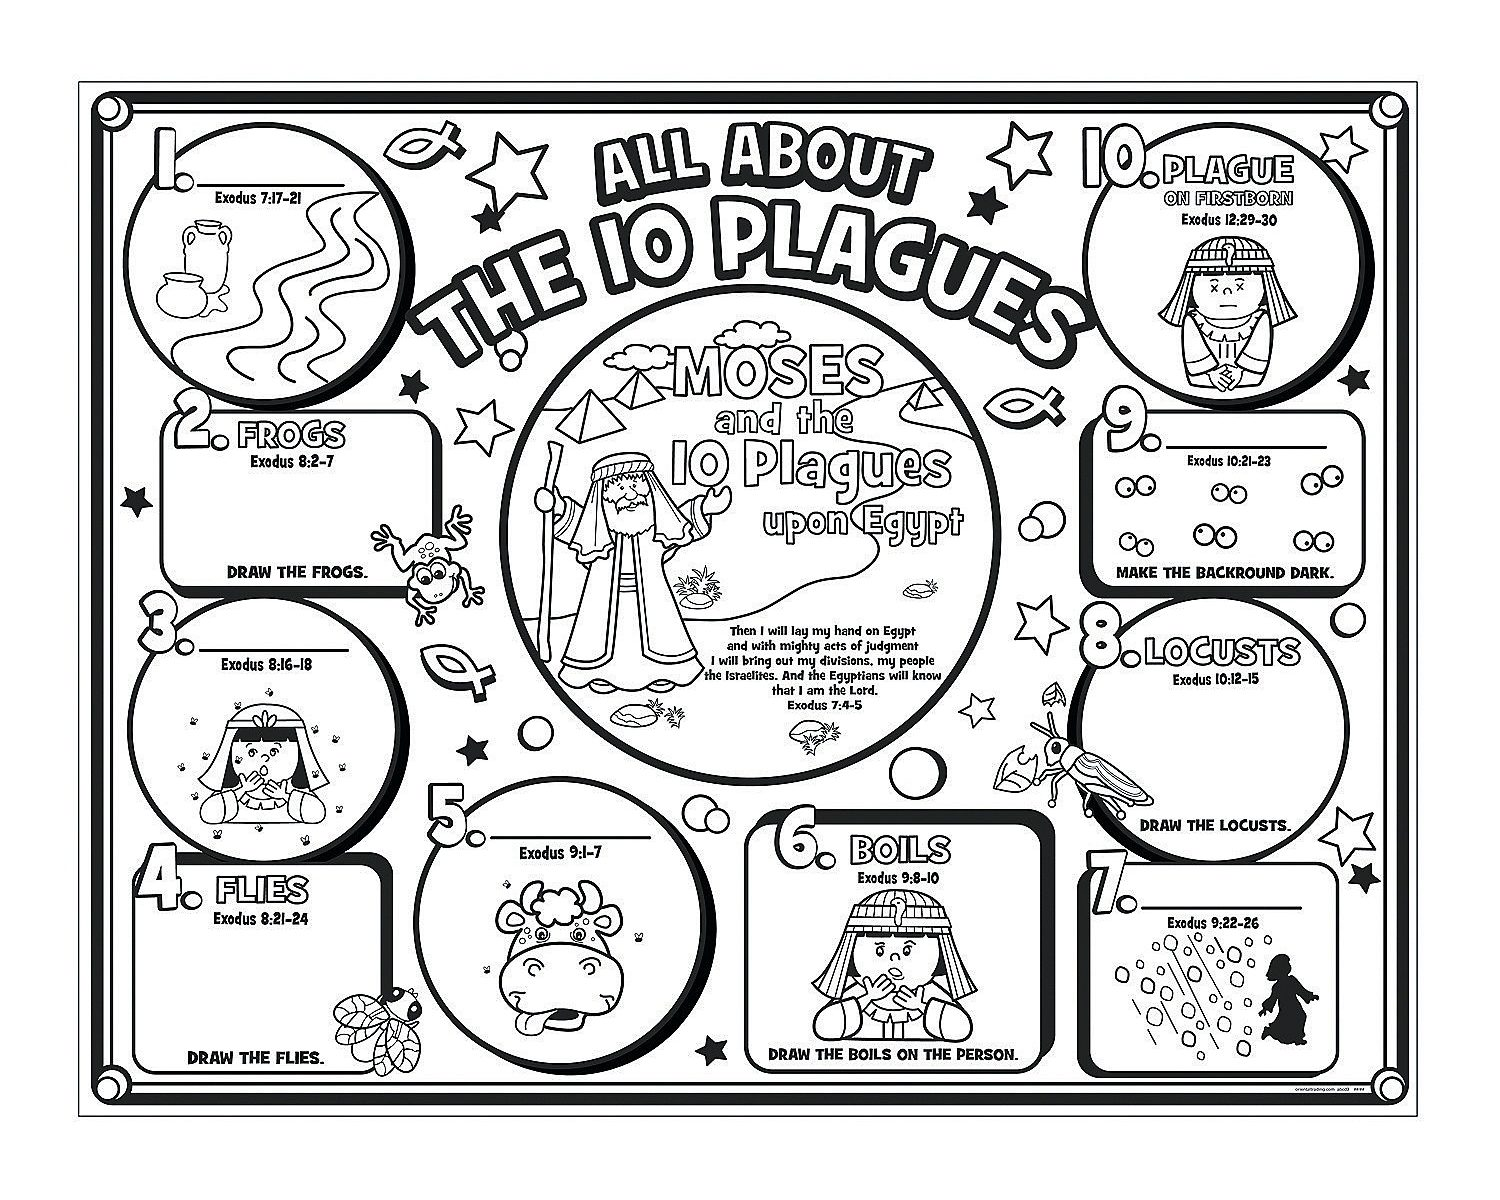 1500x1200 Impressive Plagues Coloring Pages Top Gallery Ideas